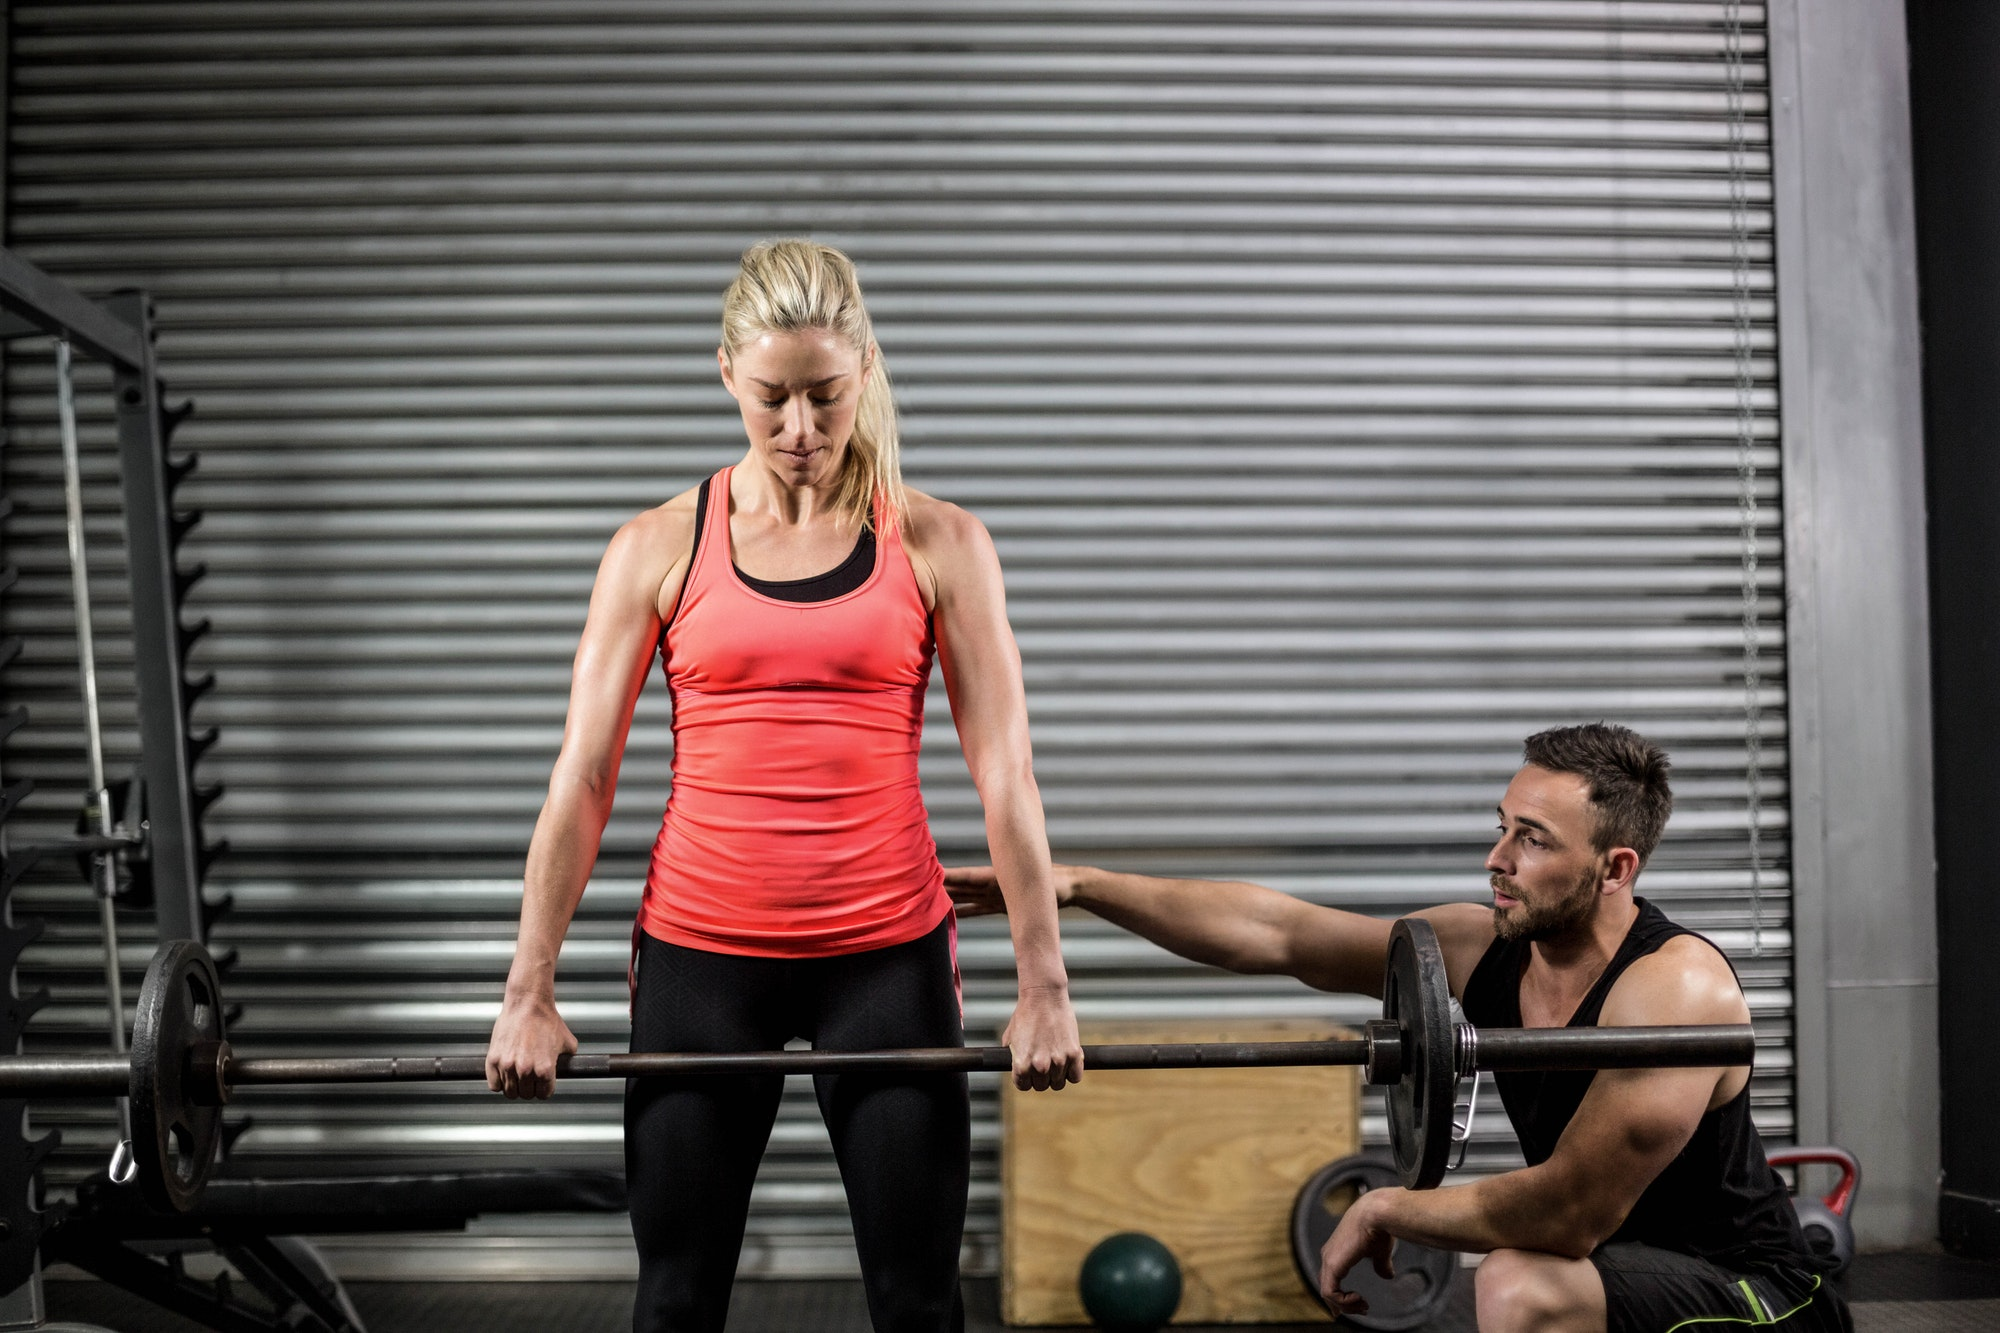 Trainer helping woman with lifting barbell at crossfit gym